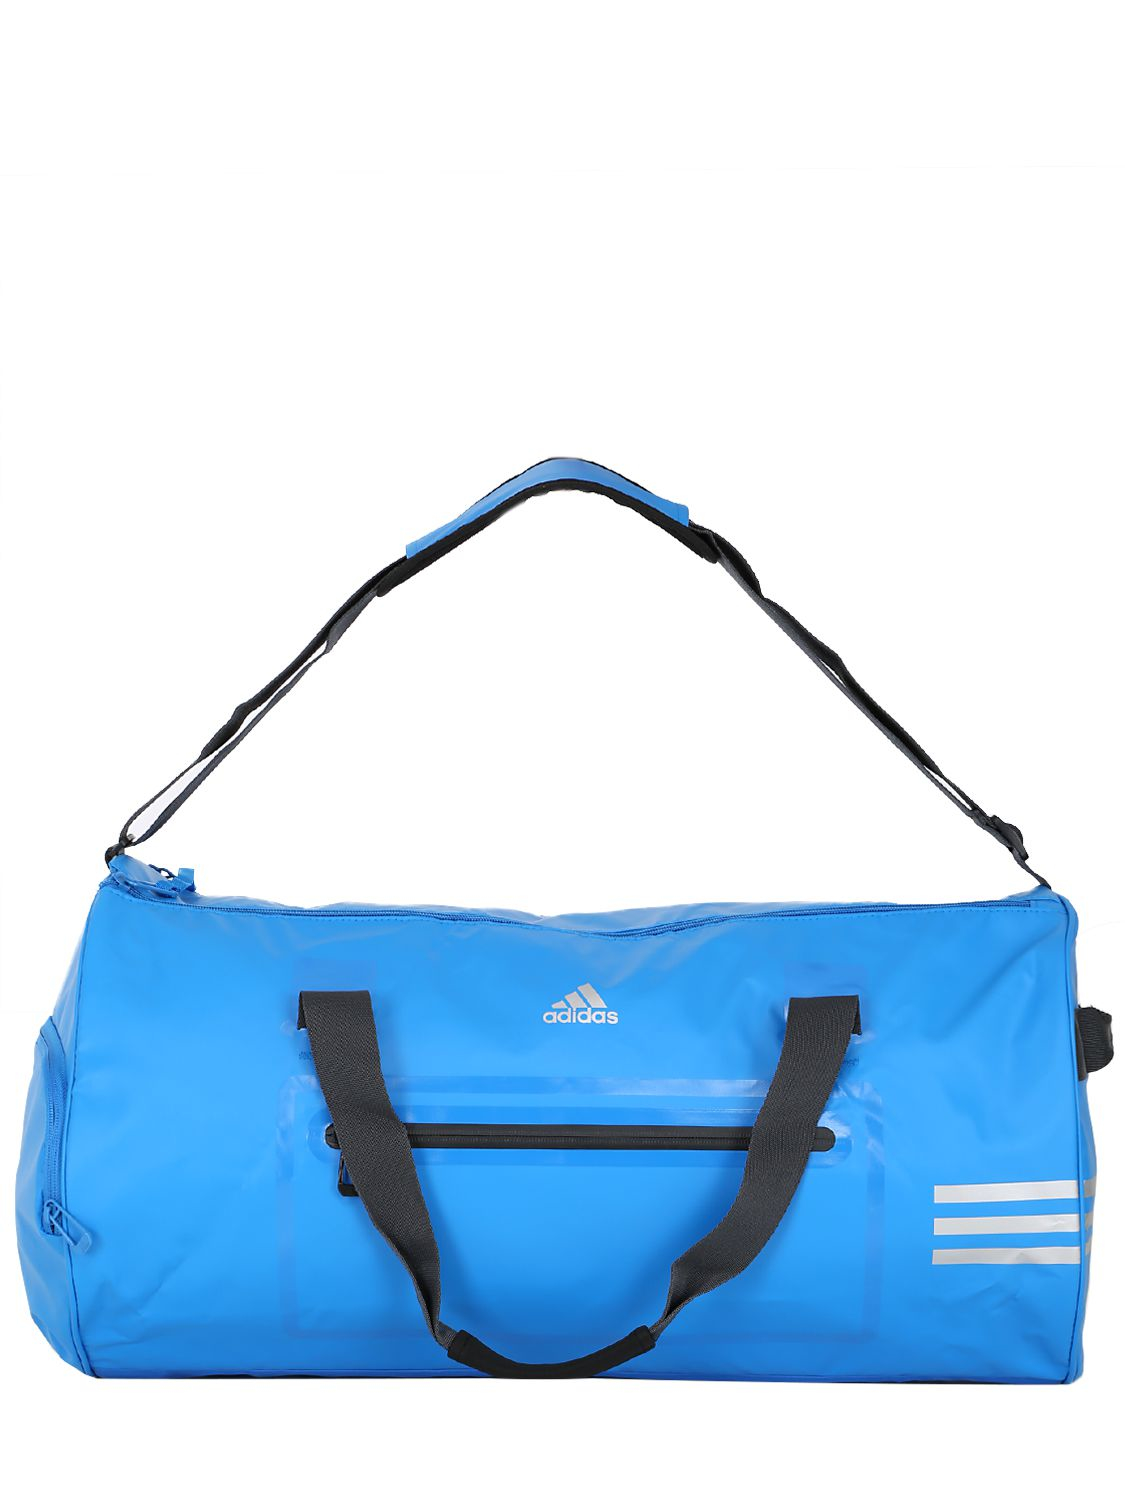 Lyst - adidas Originals Water Repellent Coated Nylon Duffle Bag in ... 0af4ee924a886